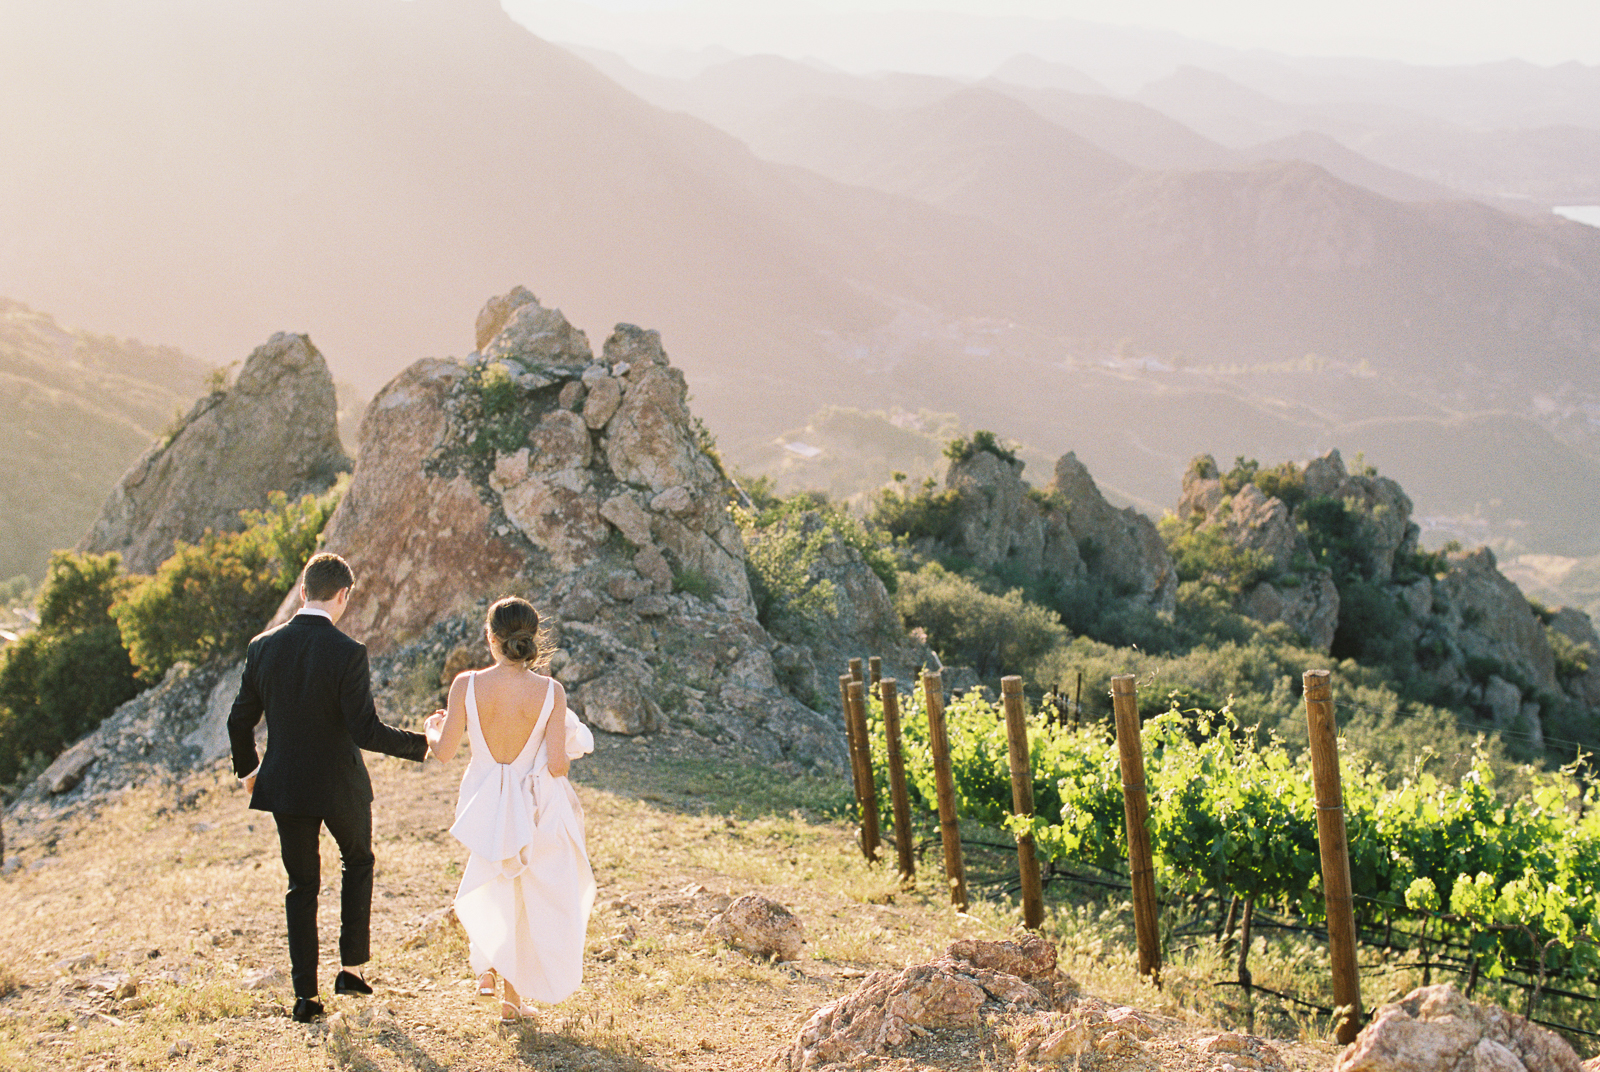 Los_Angeles_Wedding_Photographer-2-5.jpg